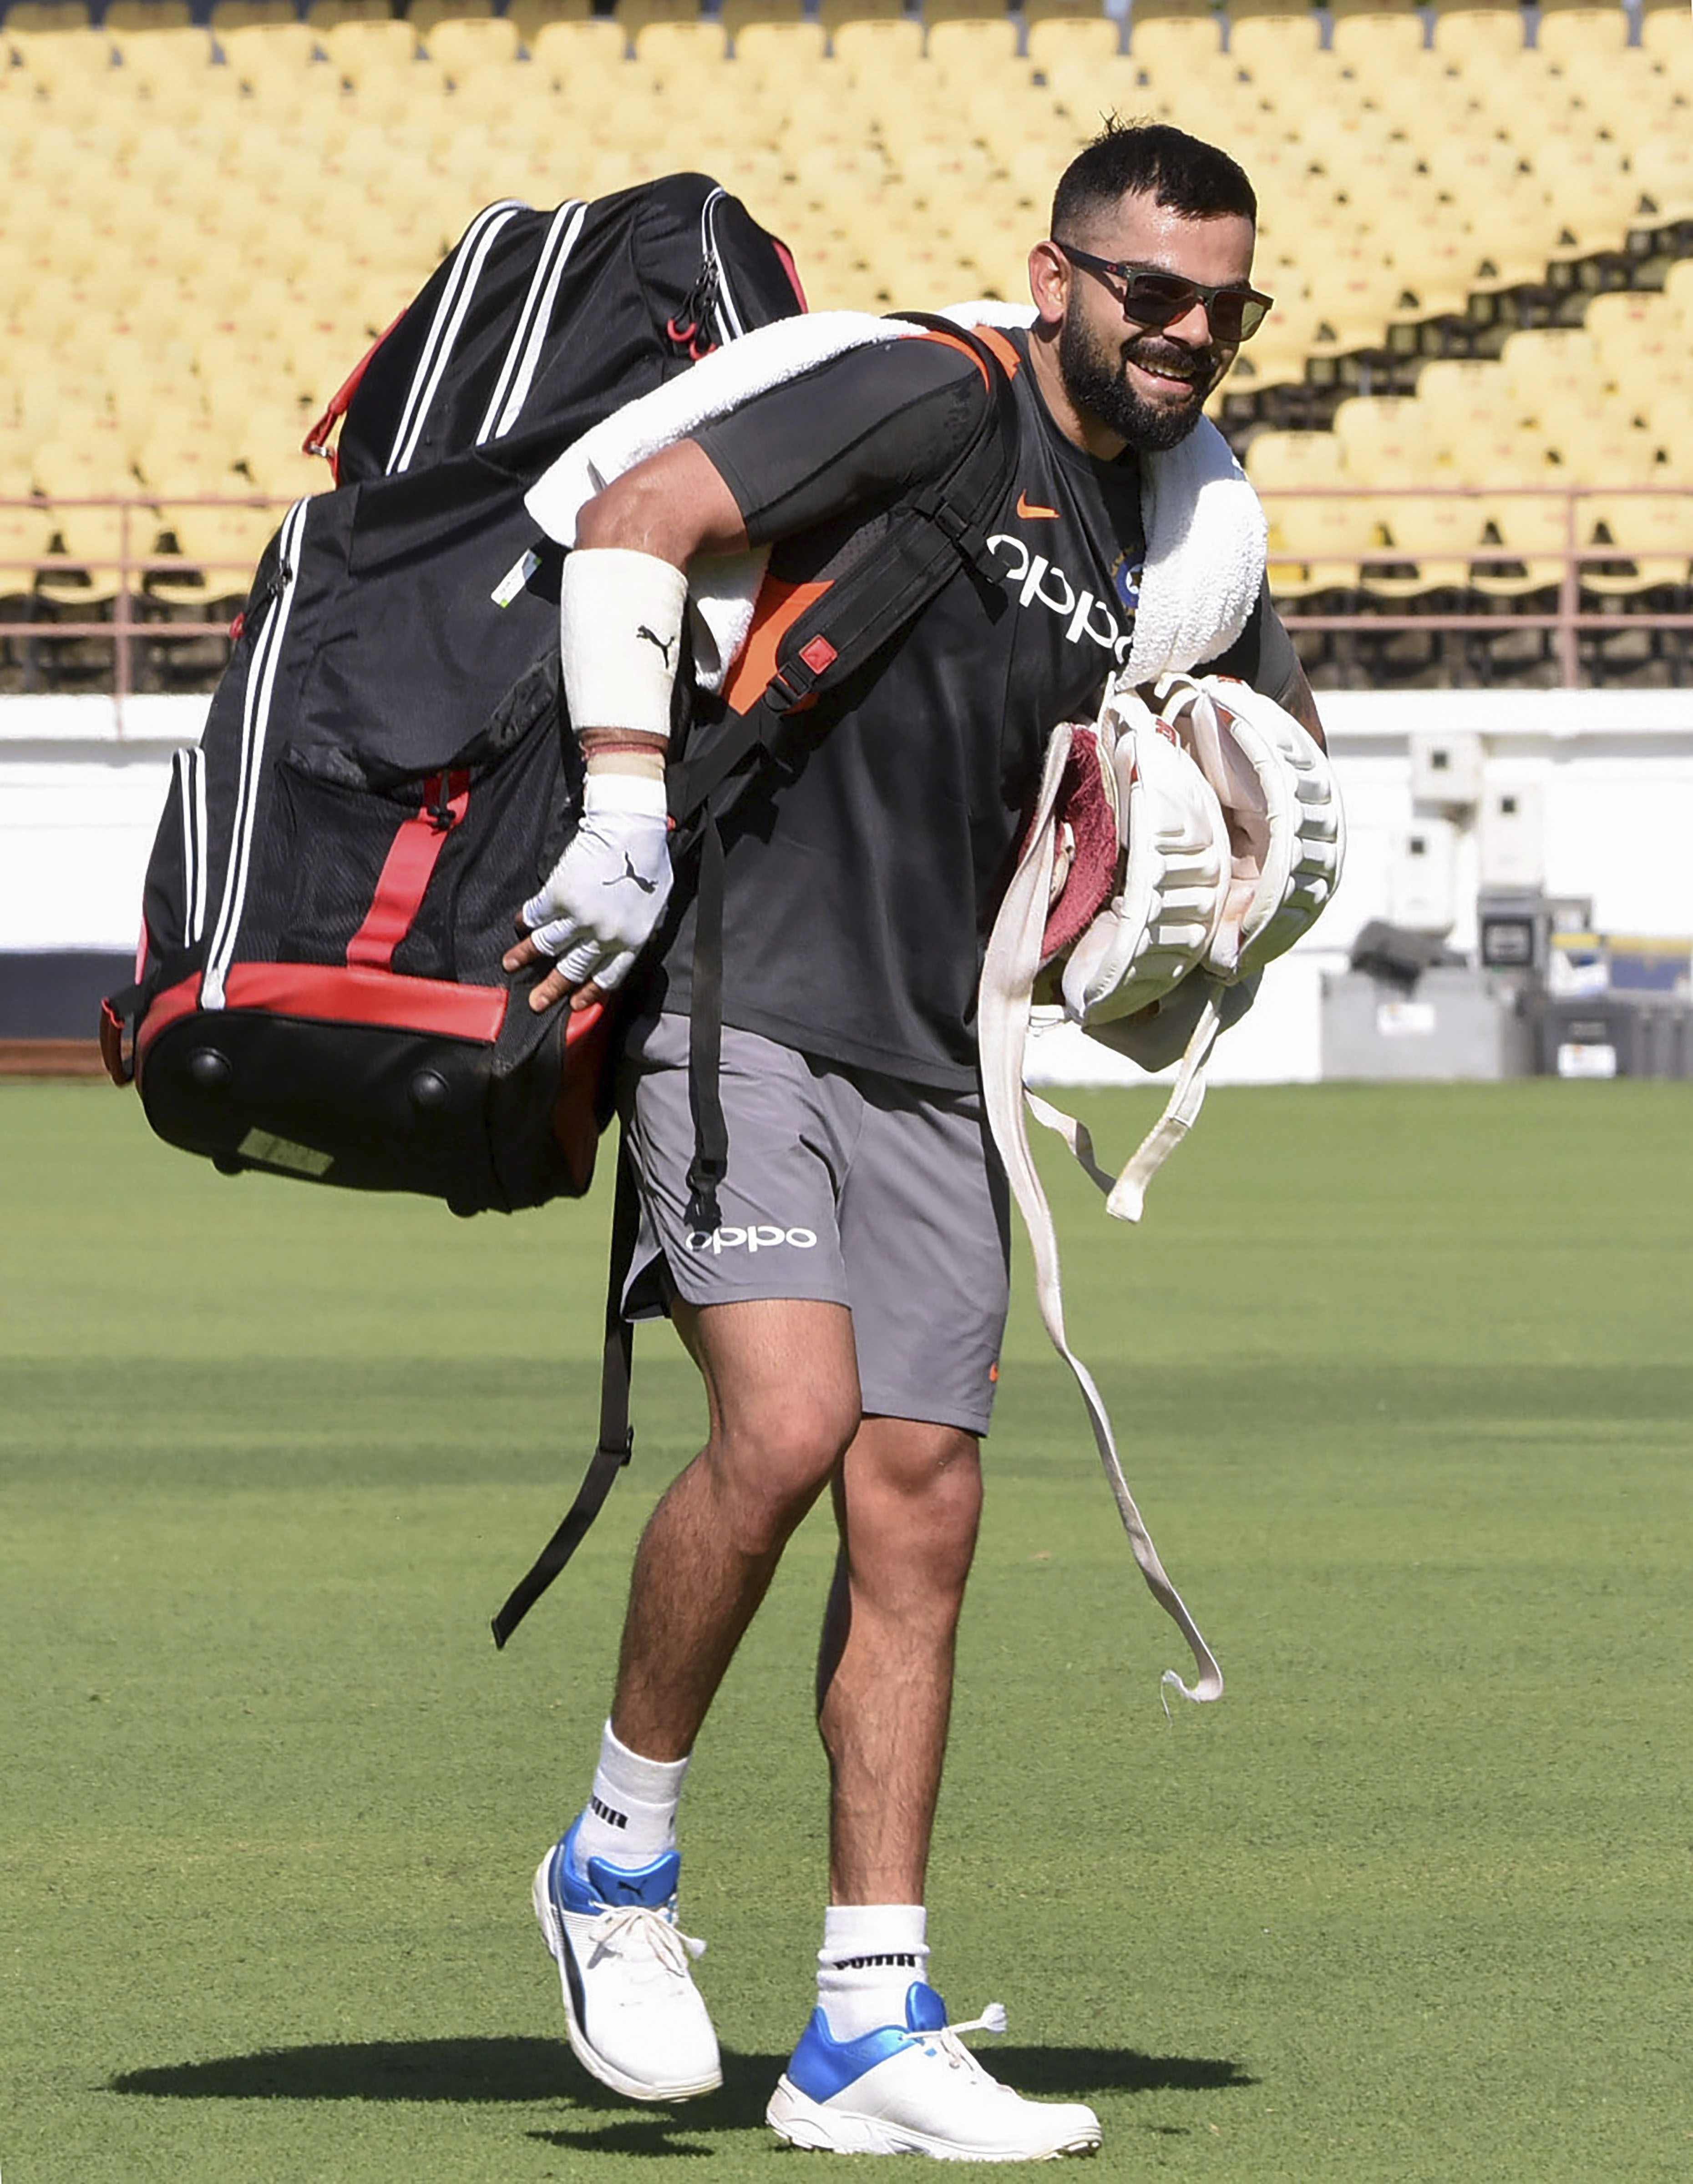 Indian cricket captain Virat kohli during a practice session ahead of the first test match against West Indies, in Rajkot - PTI